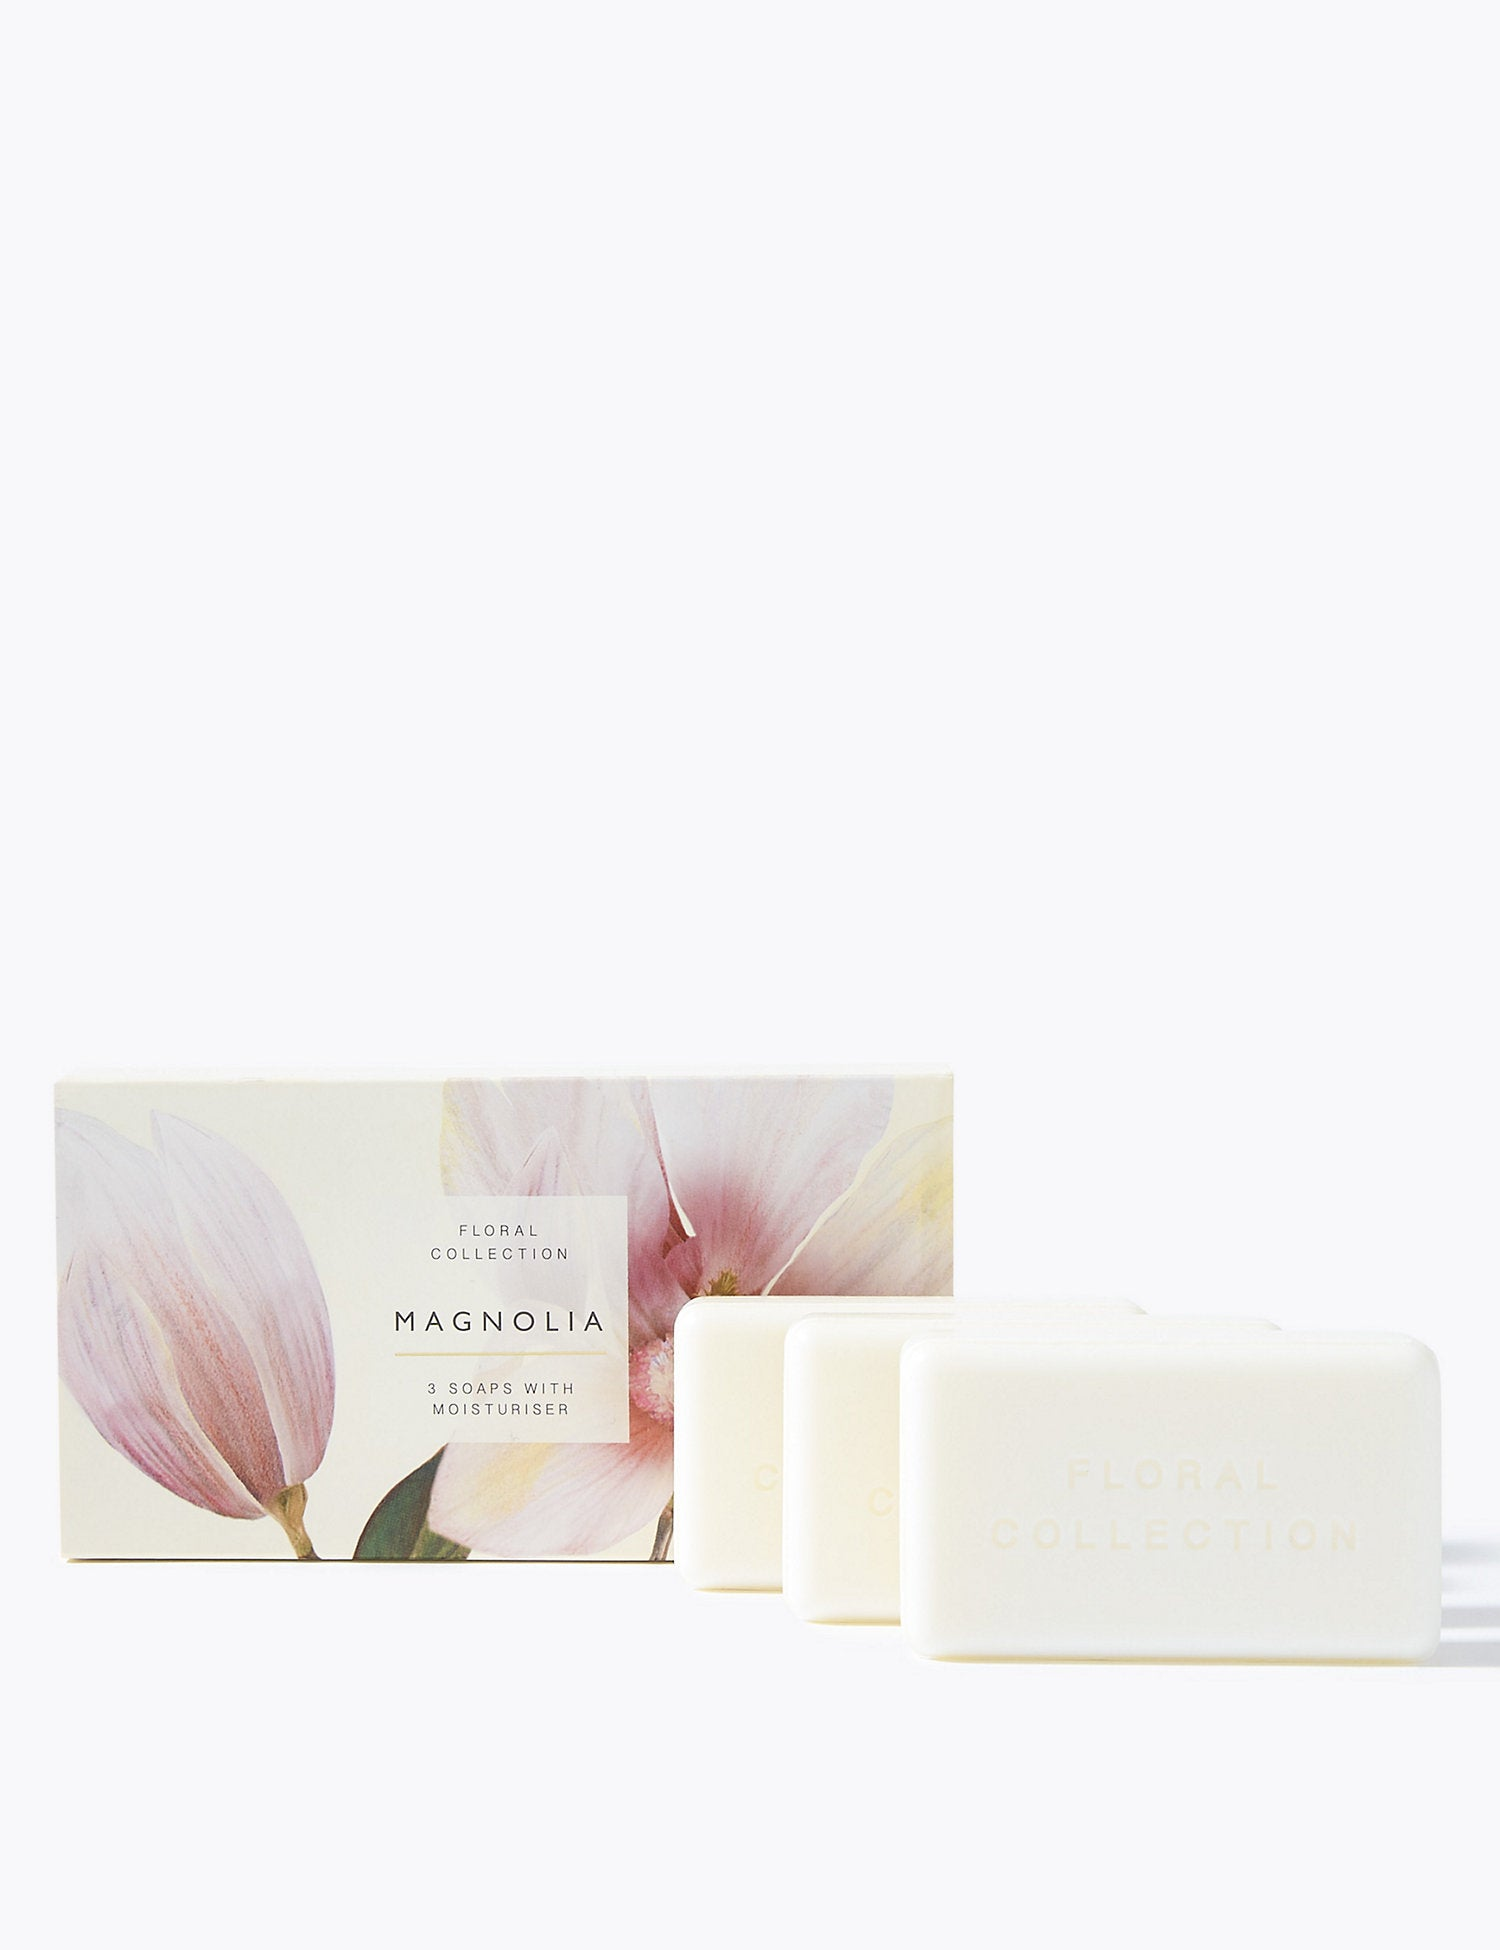 Magnolia Trio of Soaps